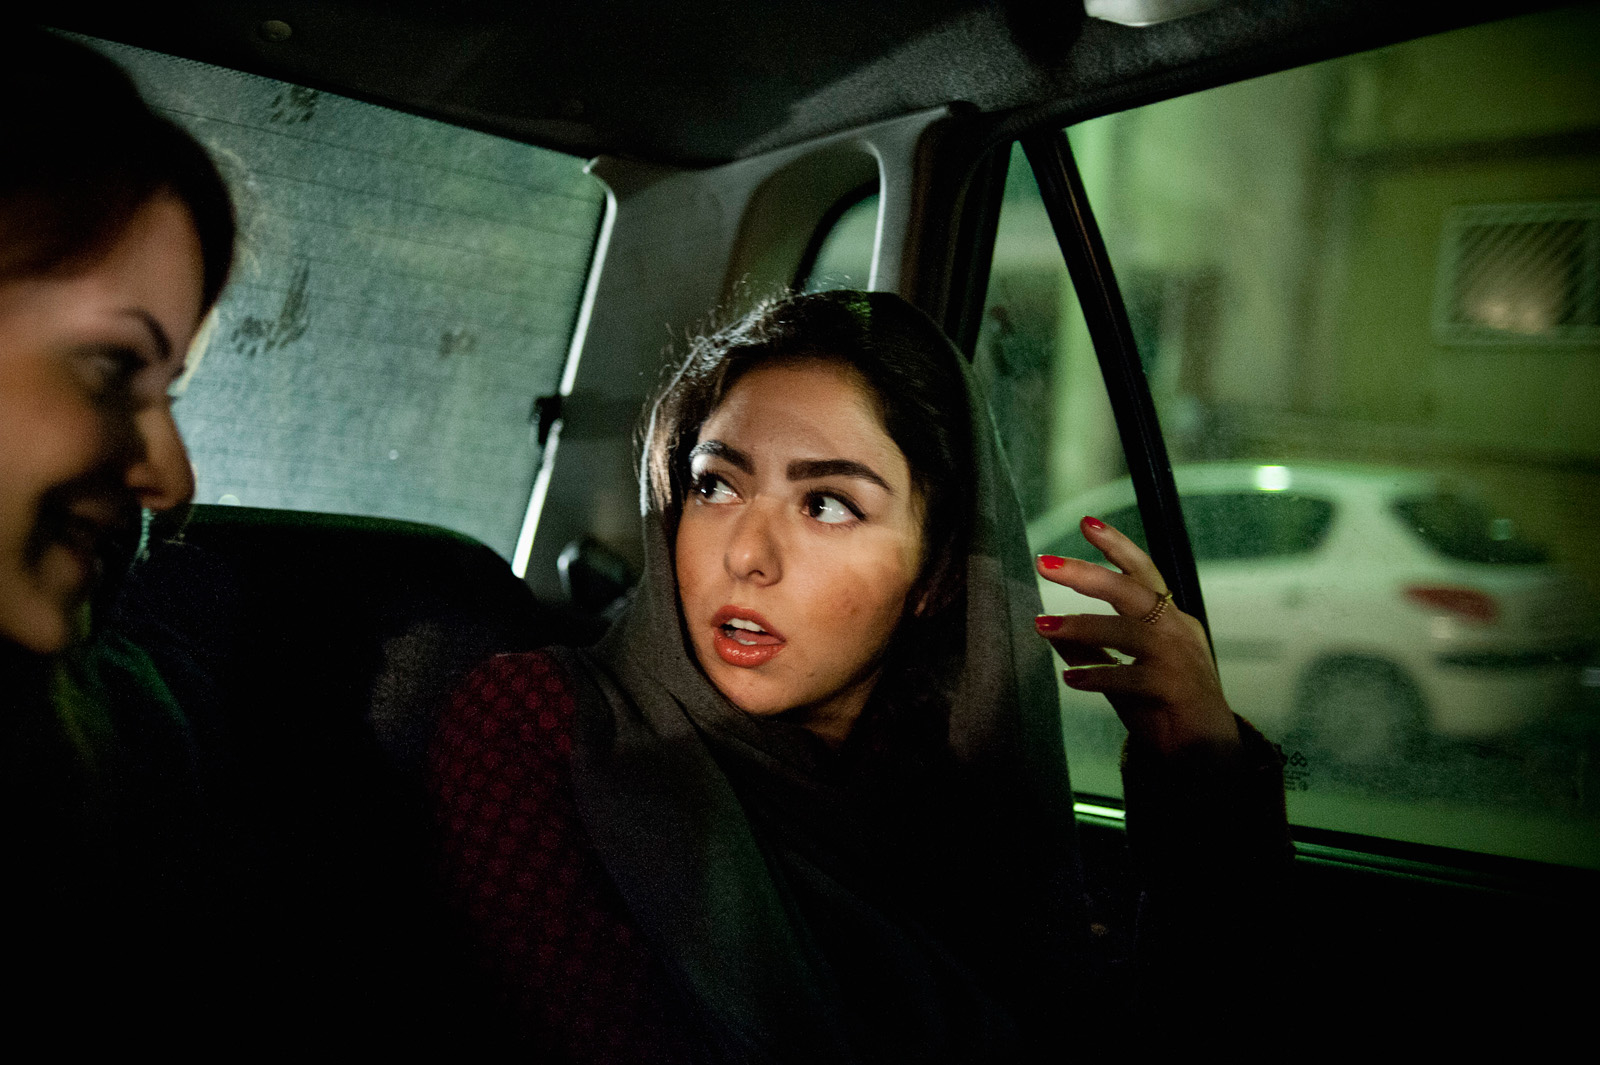 Yassi and her friend take a cab to an opening reception at a gallery in northern Tehran. Even though being bold and eye-catching is always a factor that concerns the morality police, many girls choose to put on bright lipstick and wear distinctive fashion. Tehran, Iran, Nov. 24, 2011.